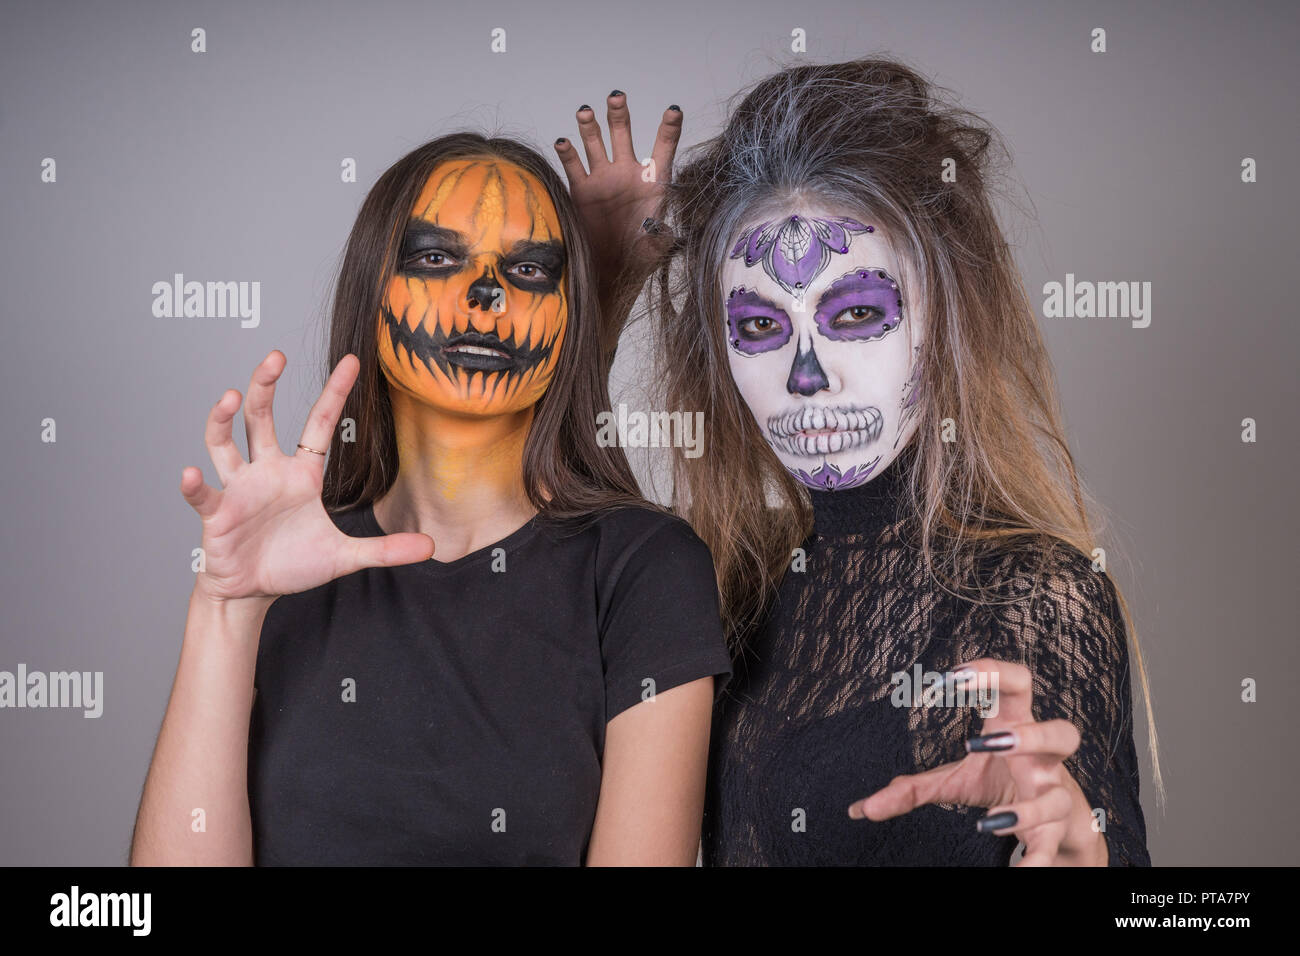 monster girls stock photos & monster girls stock images - page 2 - alamy